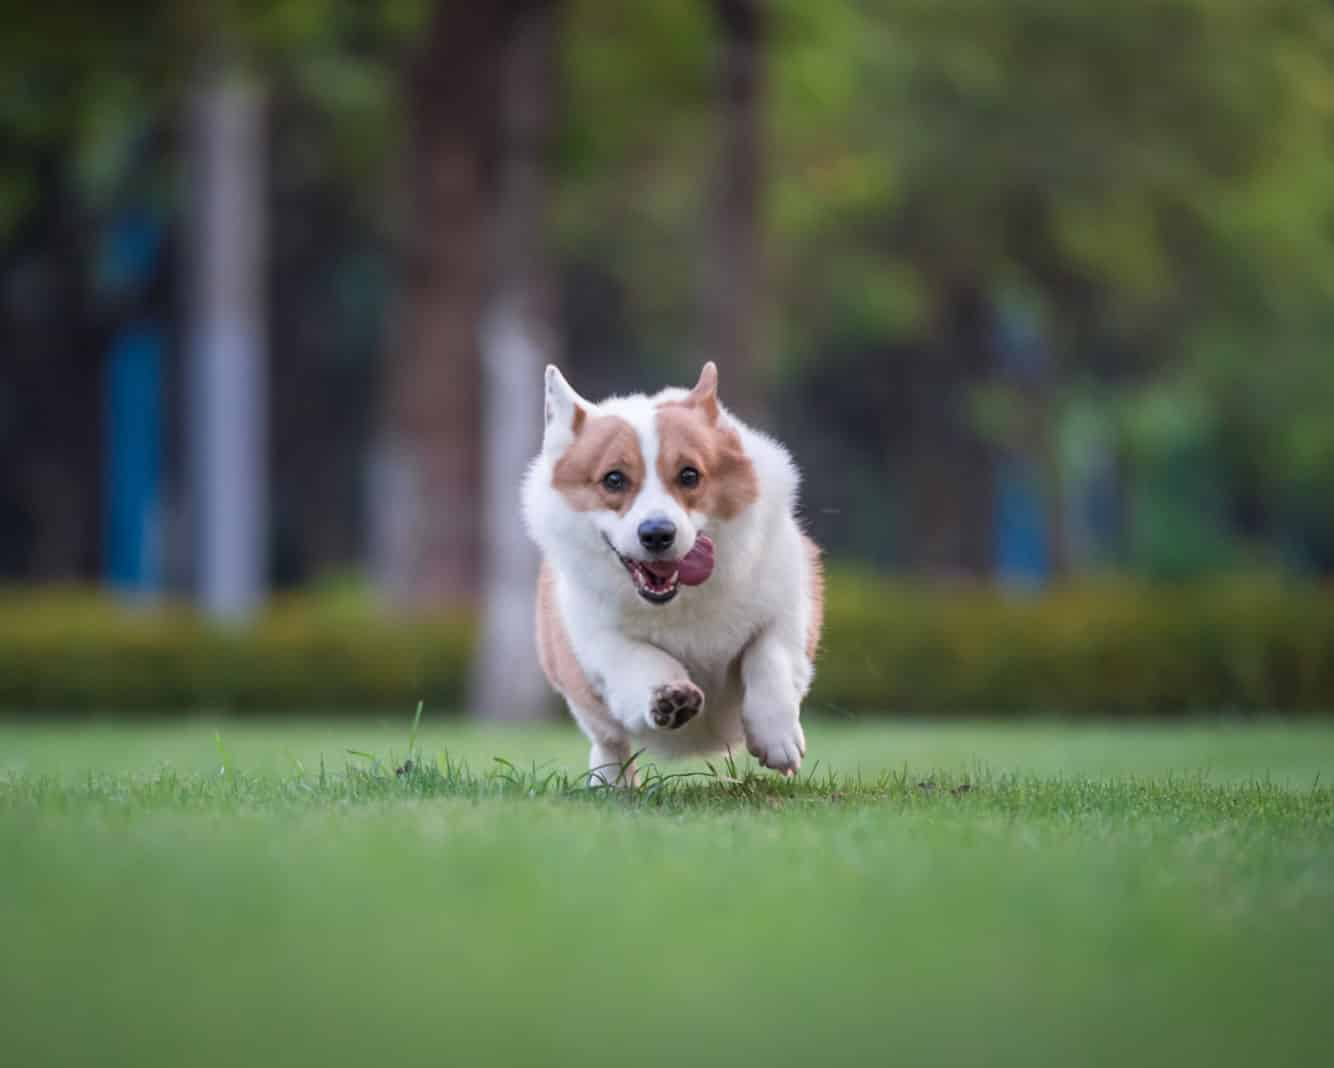 Corgi with tongue out running